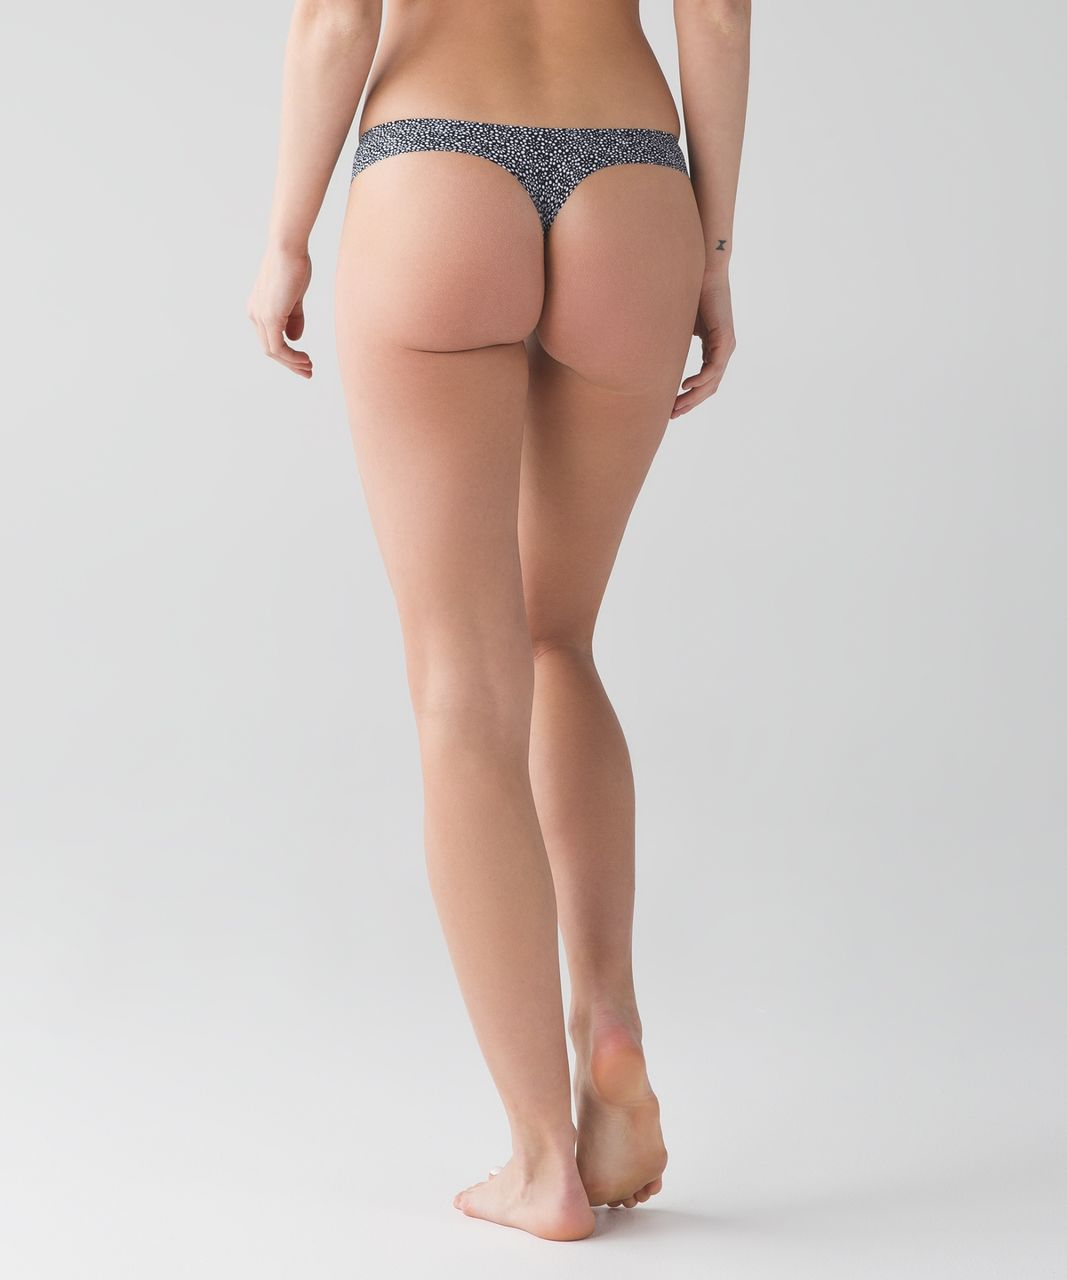 Lululemon Namastay Put Thong - Freckle Flower Black White